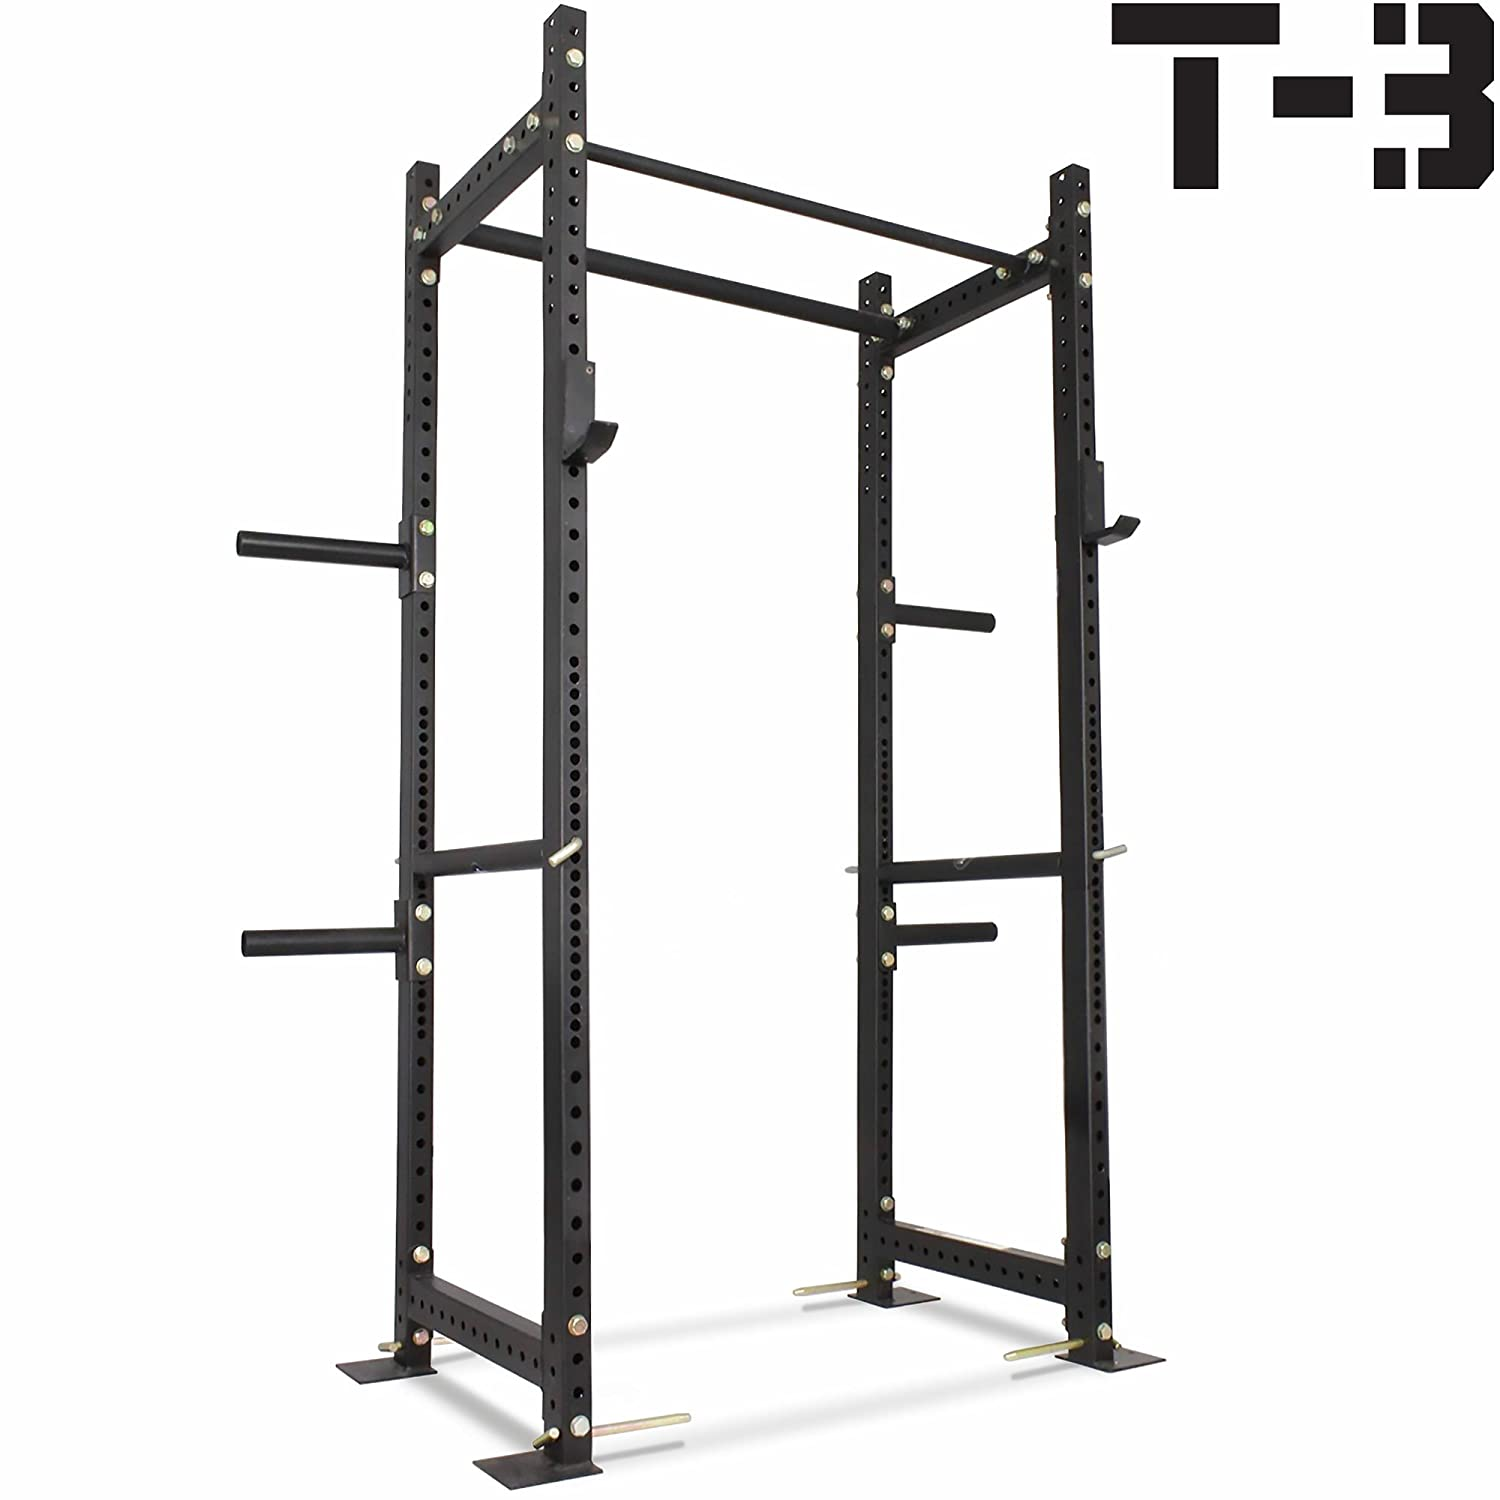 Titan T-3 Series HD Power Rack Squat Deadlift Lift Cage Bench